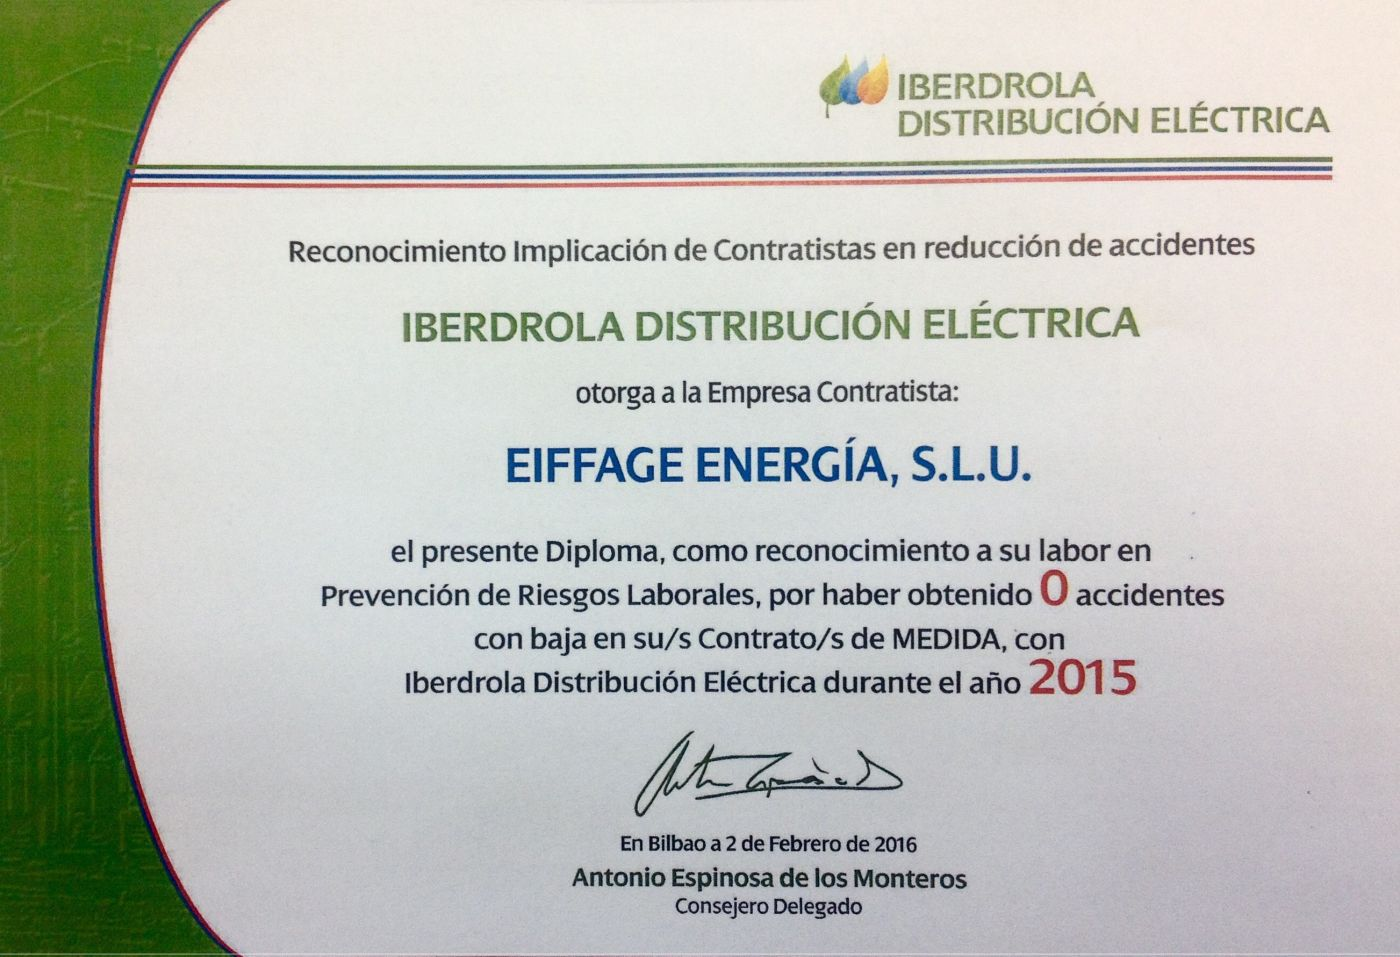 Recognition-from-Iberdrola-to-Eiffage-Energia